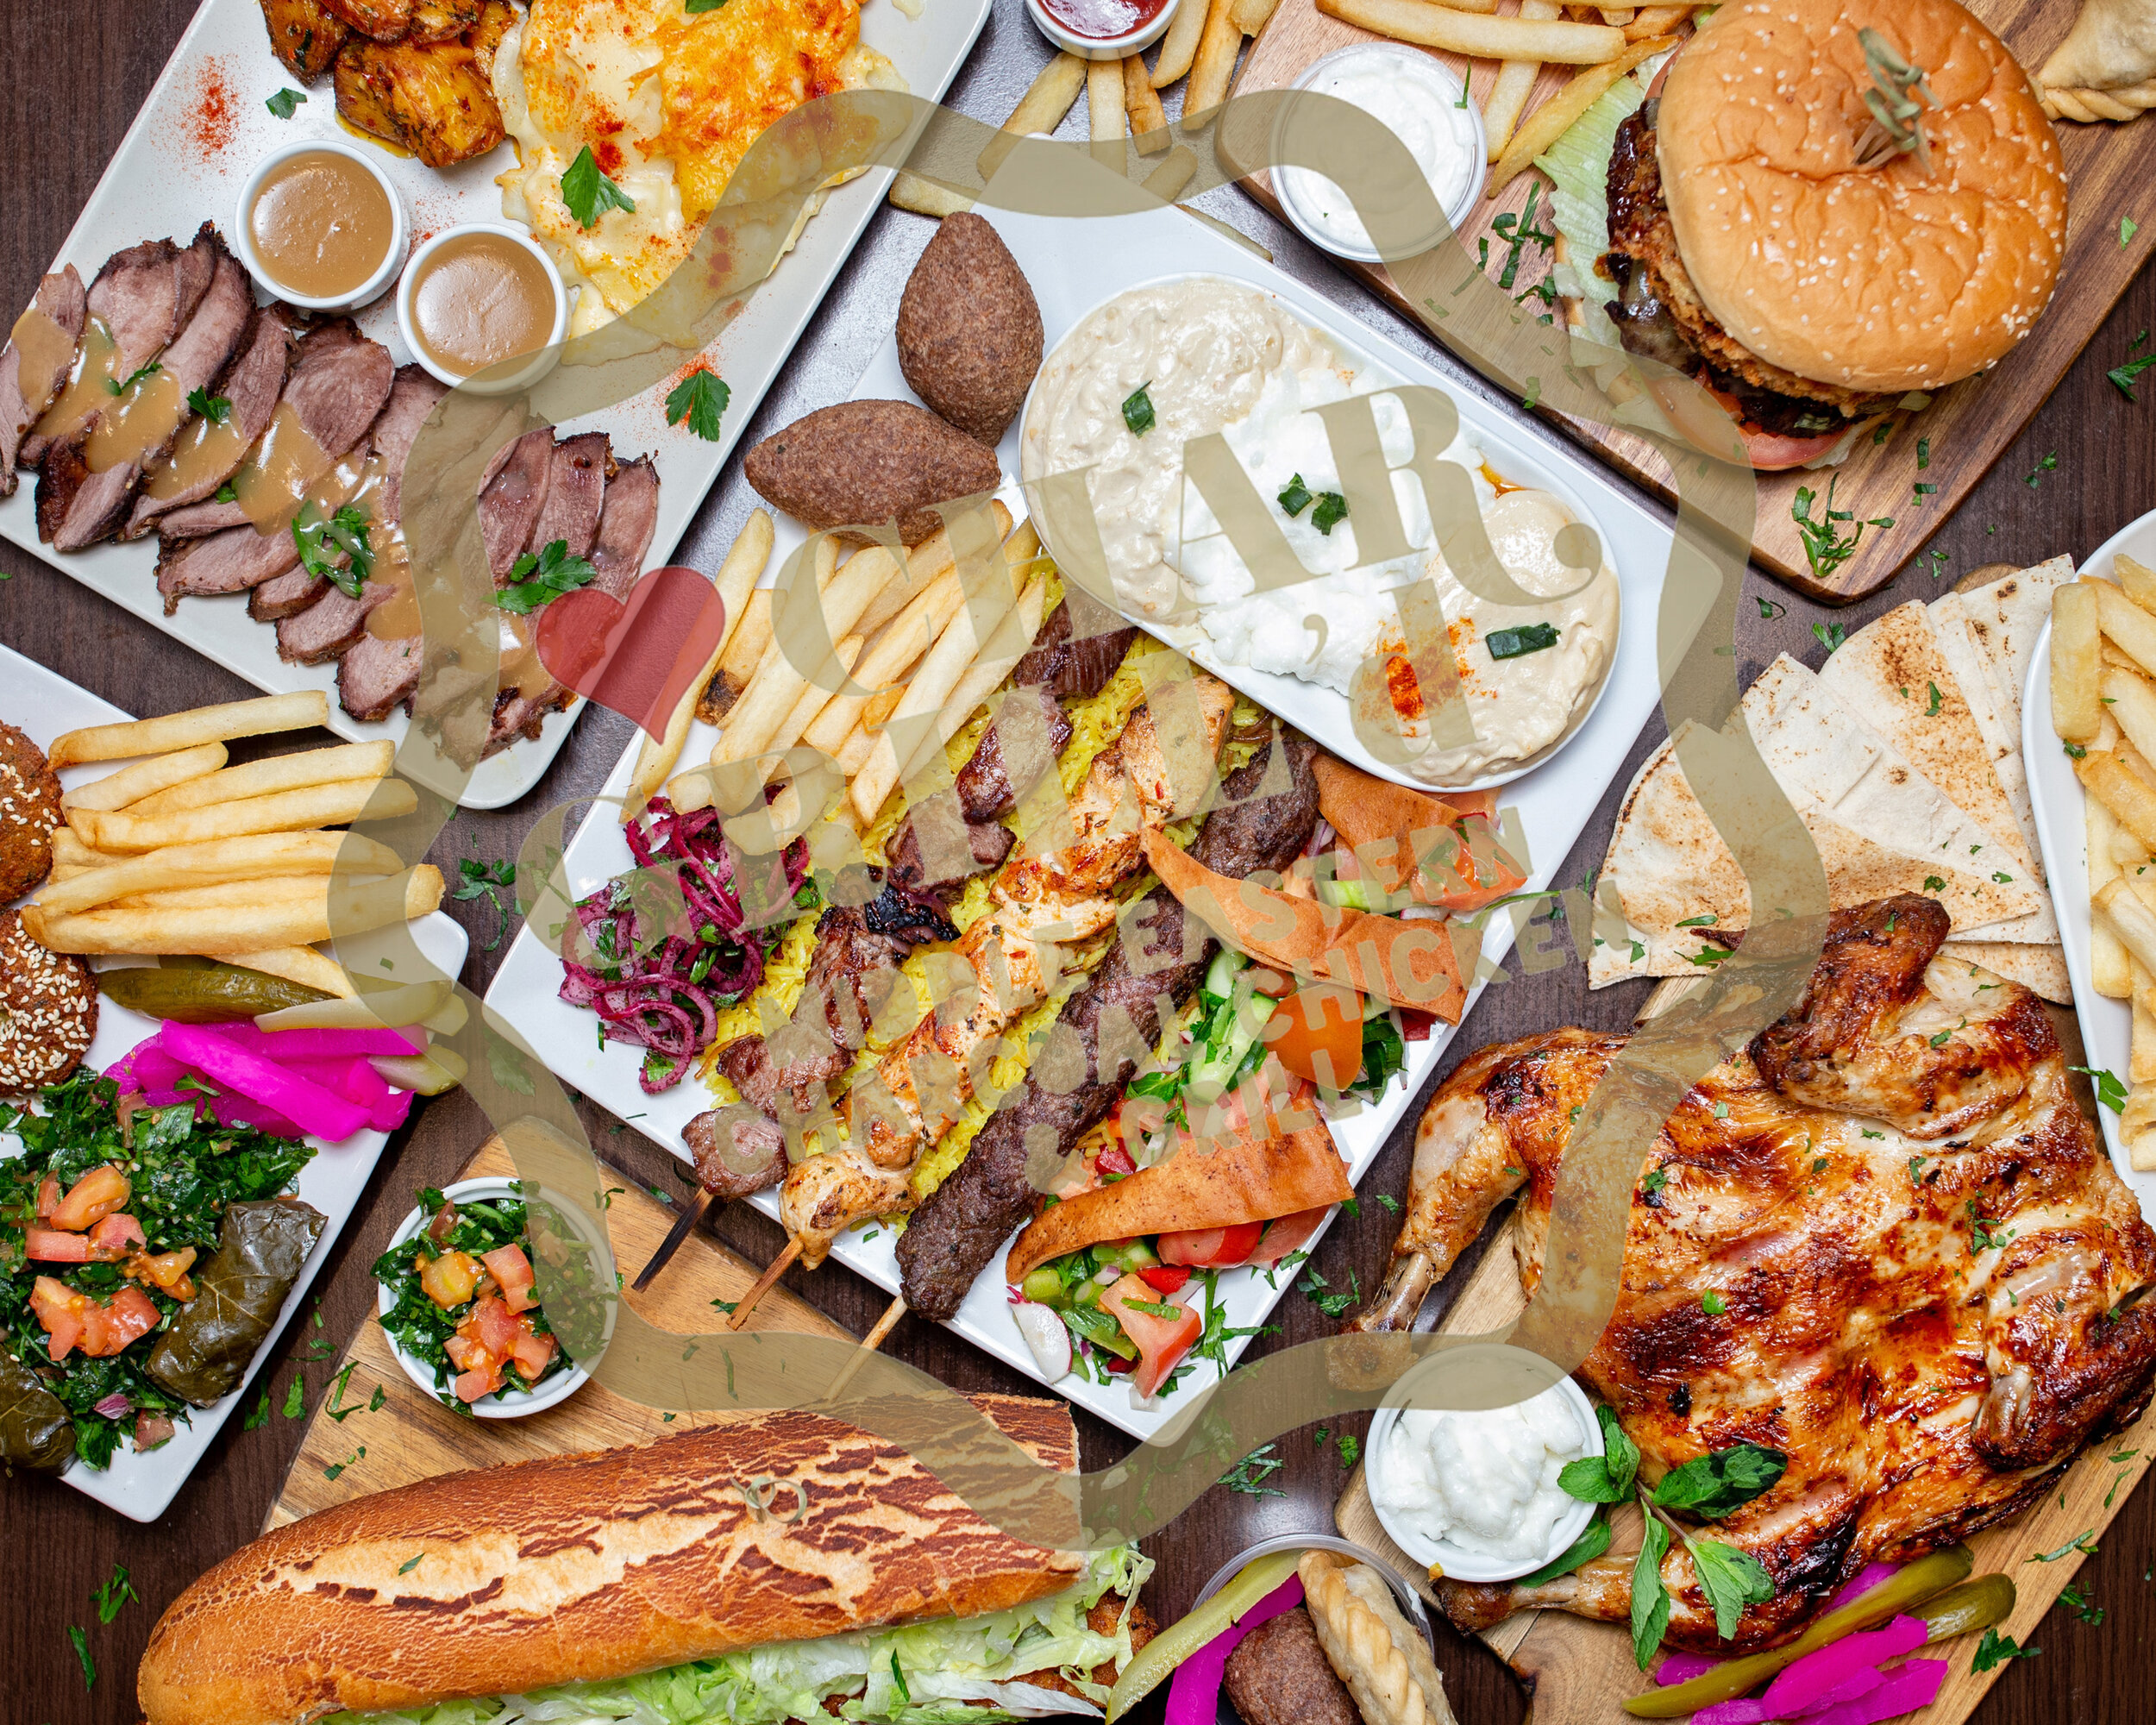 Need Catering? - the Best tasting food for your next party or events without any of the hassle? Ask us how we can helpCall 02 8625 1889